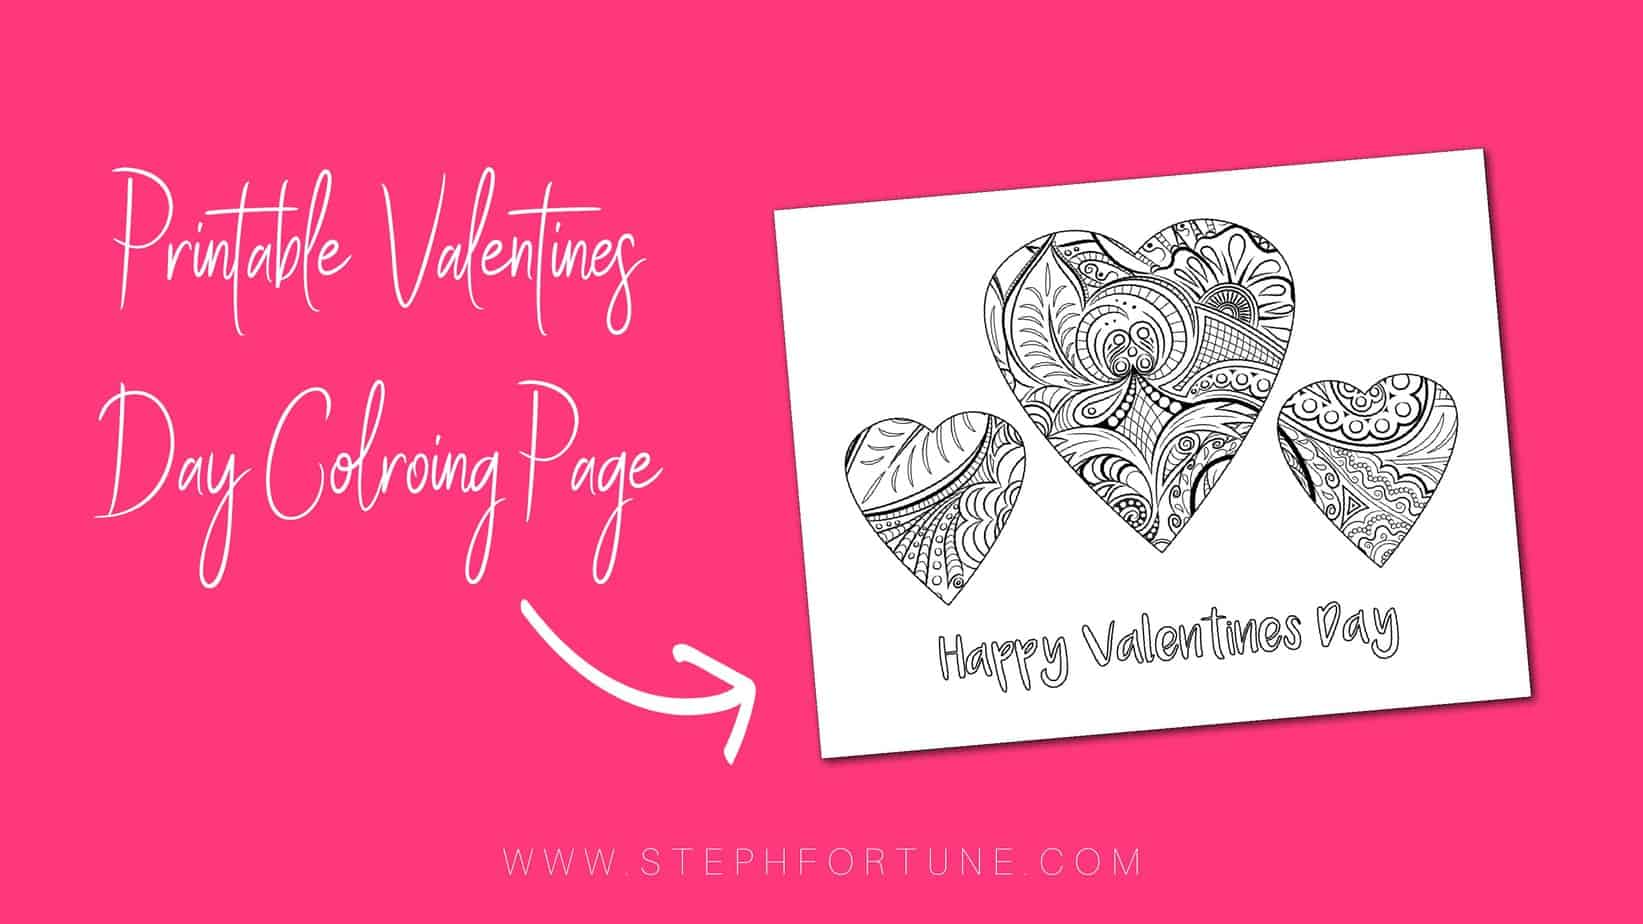 Printable valentines day coloring page